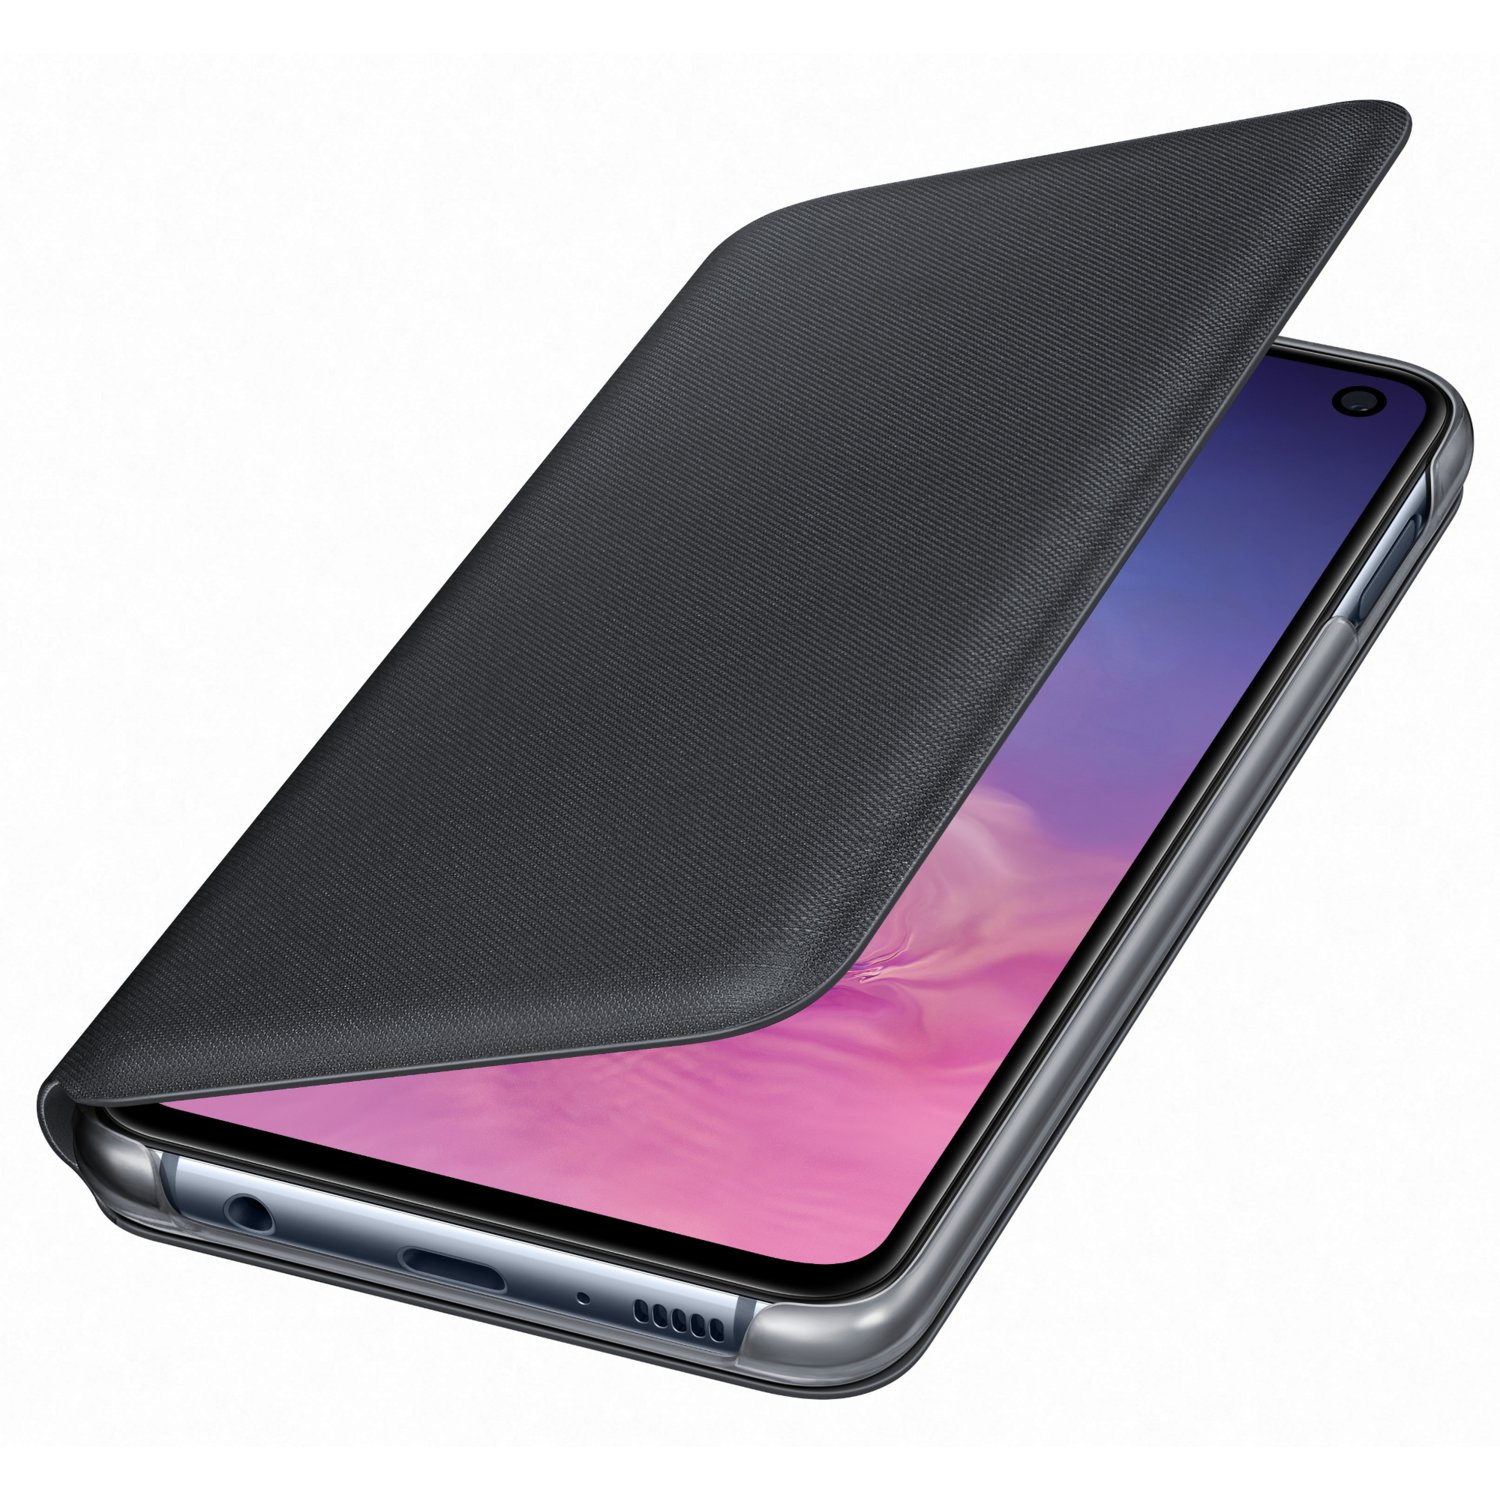 Etui SAMSUNG LED View Cover do Samsung Galaxy S10e Czarny EF-NG970PBEGWW